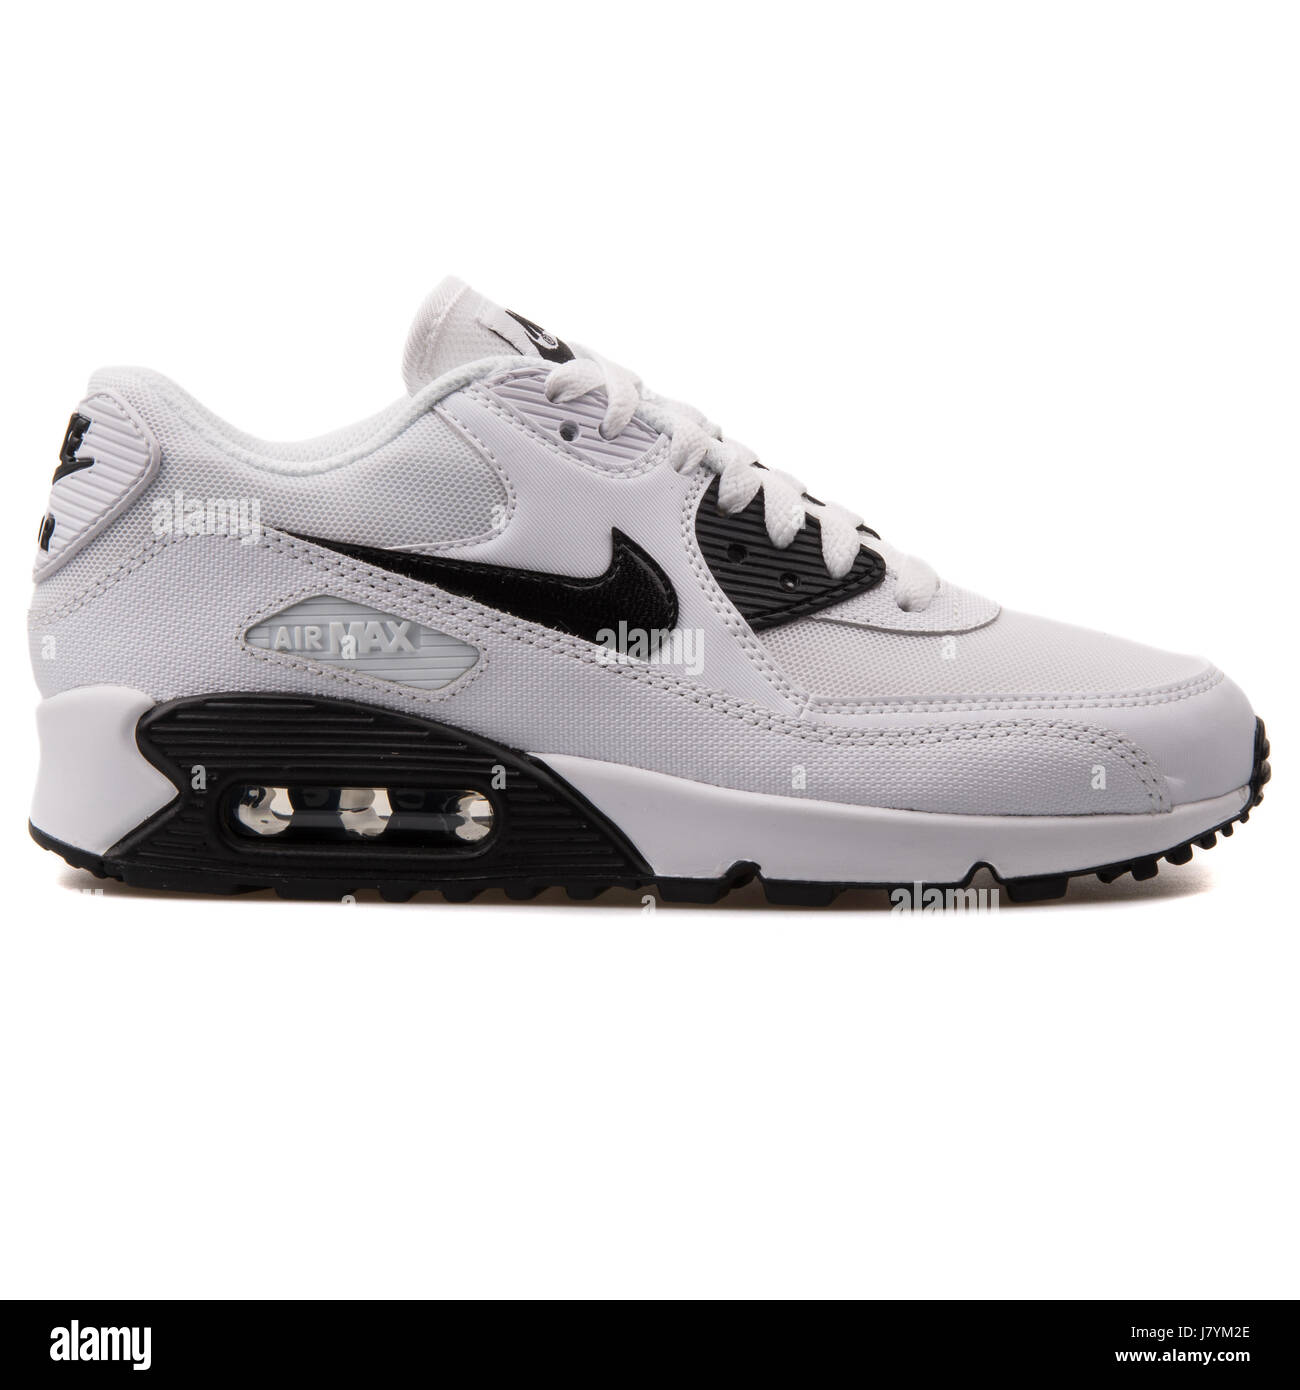 8704606db2 Nike WMNS Air Max 90 Essential White Women's Sports Sneakers - 616730-110